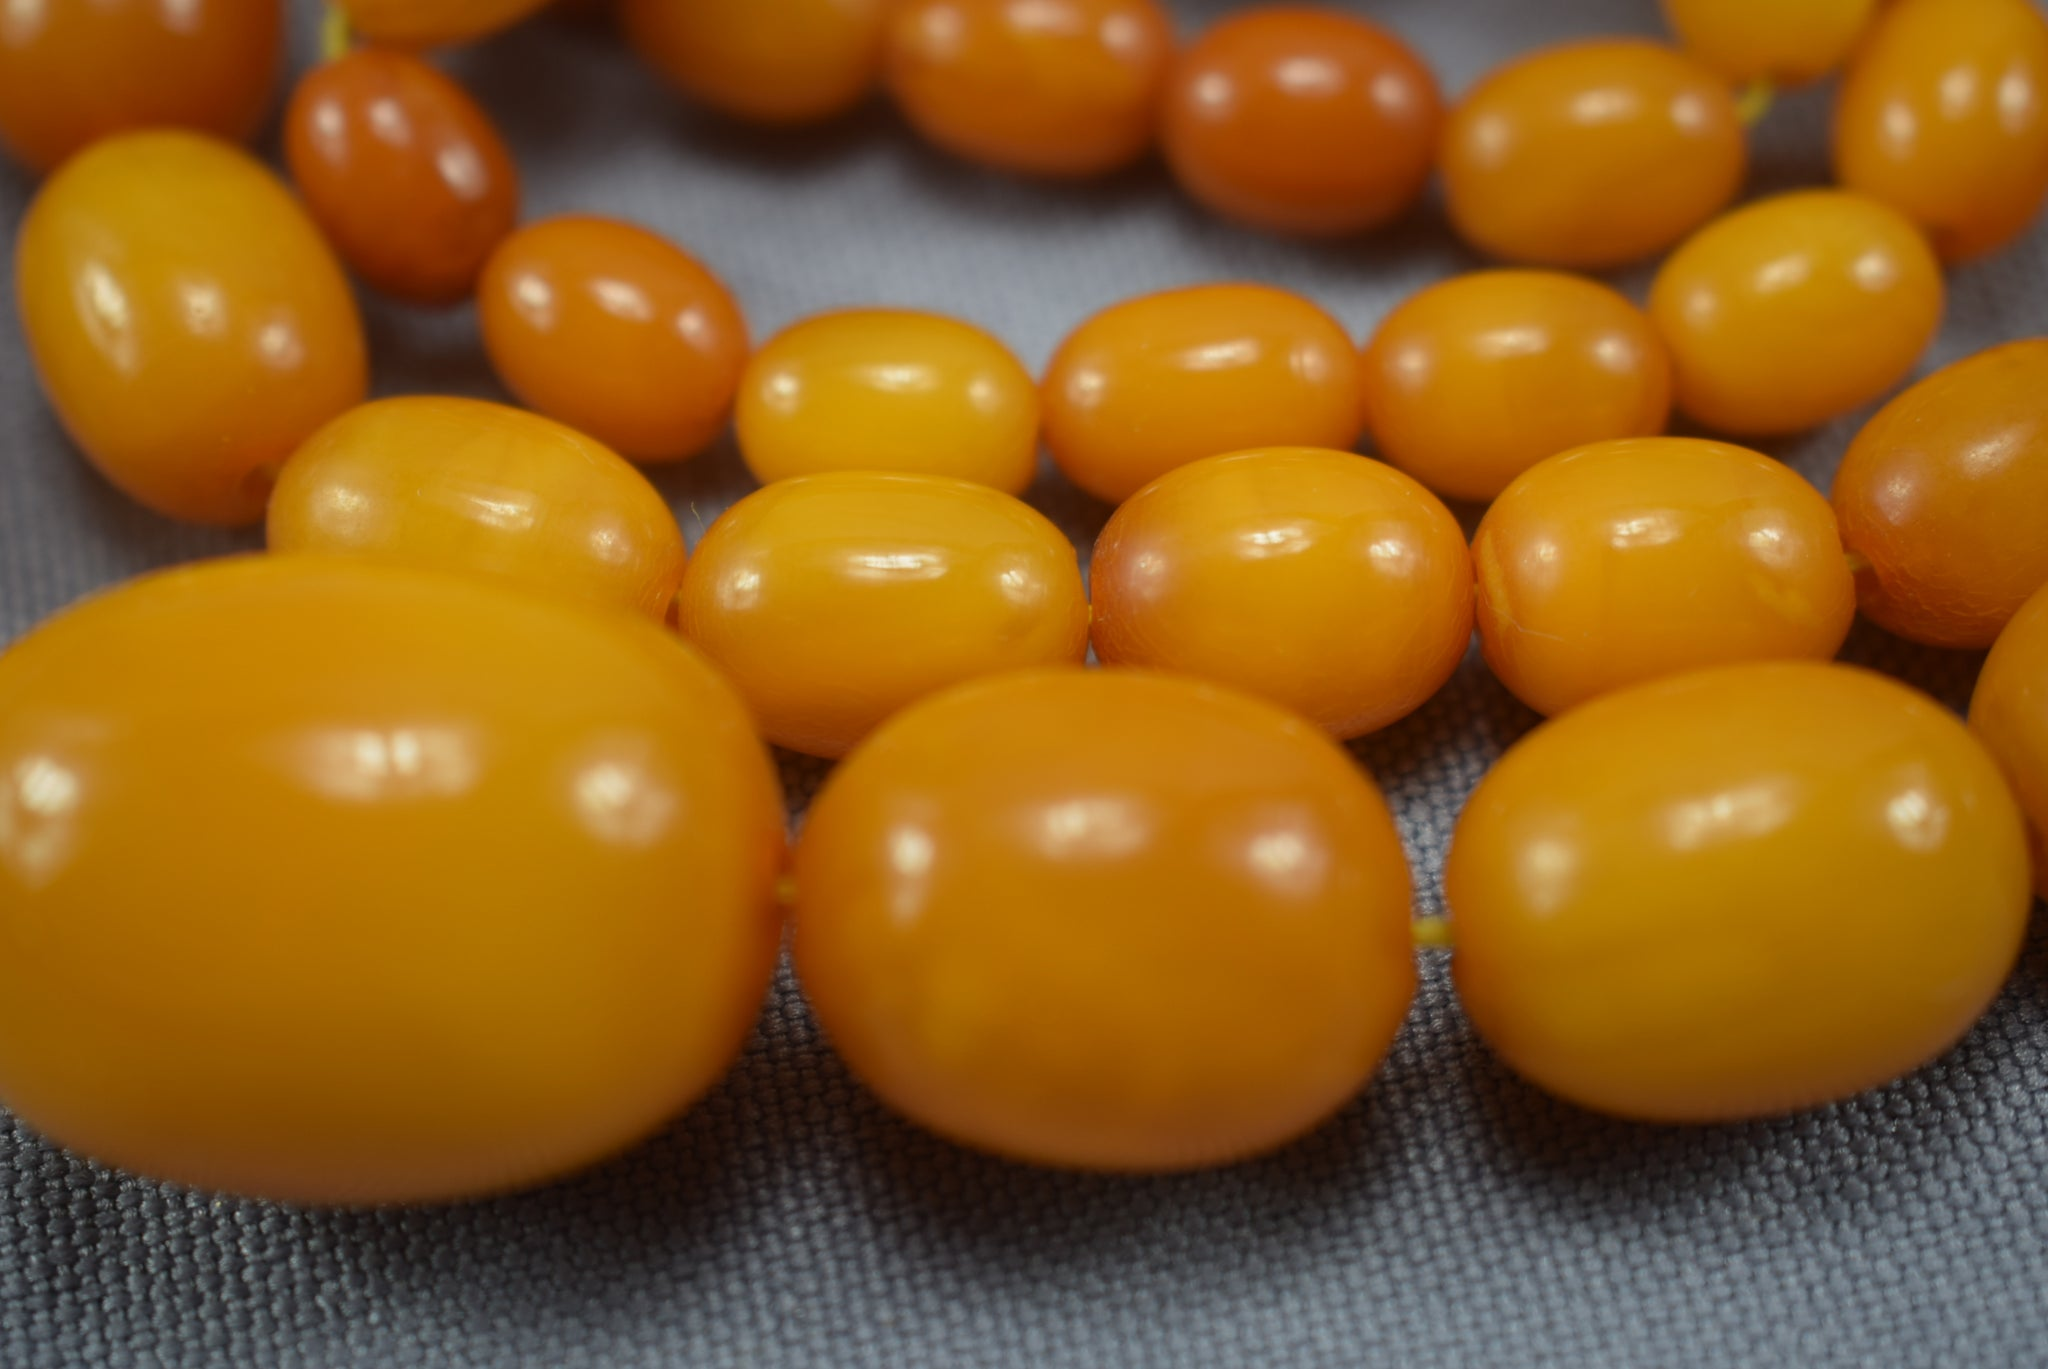 Egg Yolk Butterscotch Baltic Amber Necklace 34g - Charmantiques